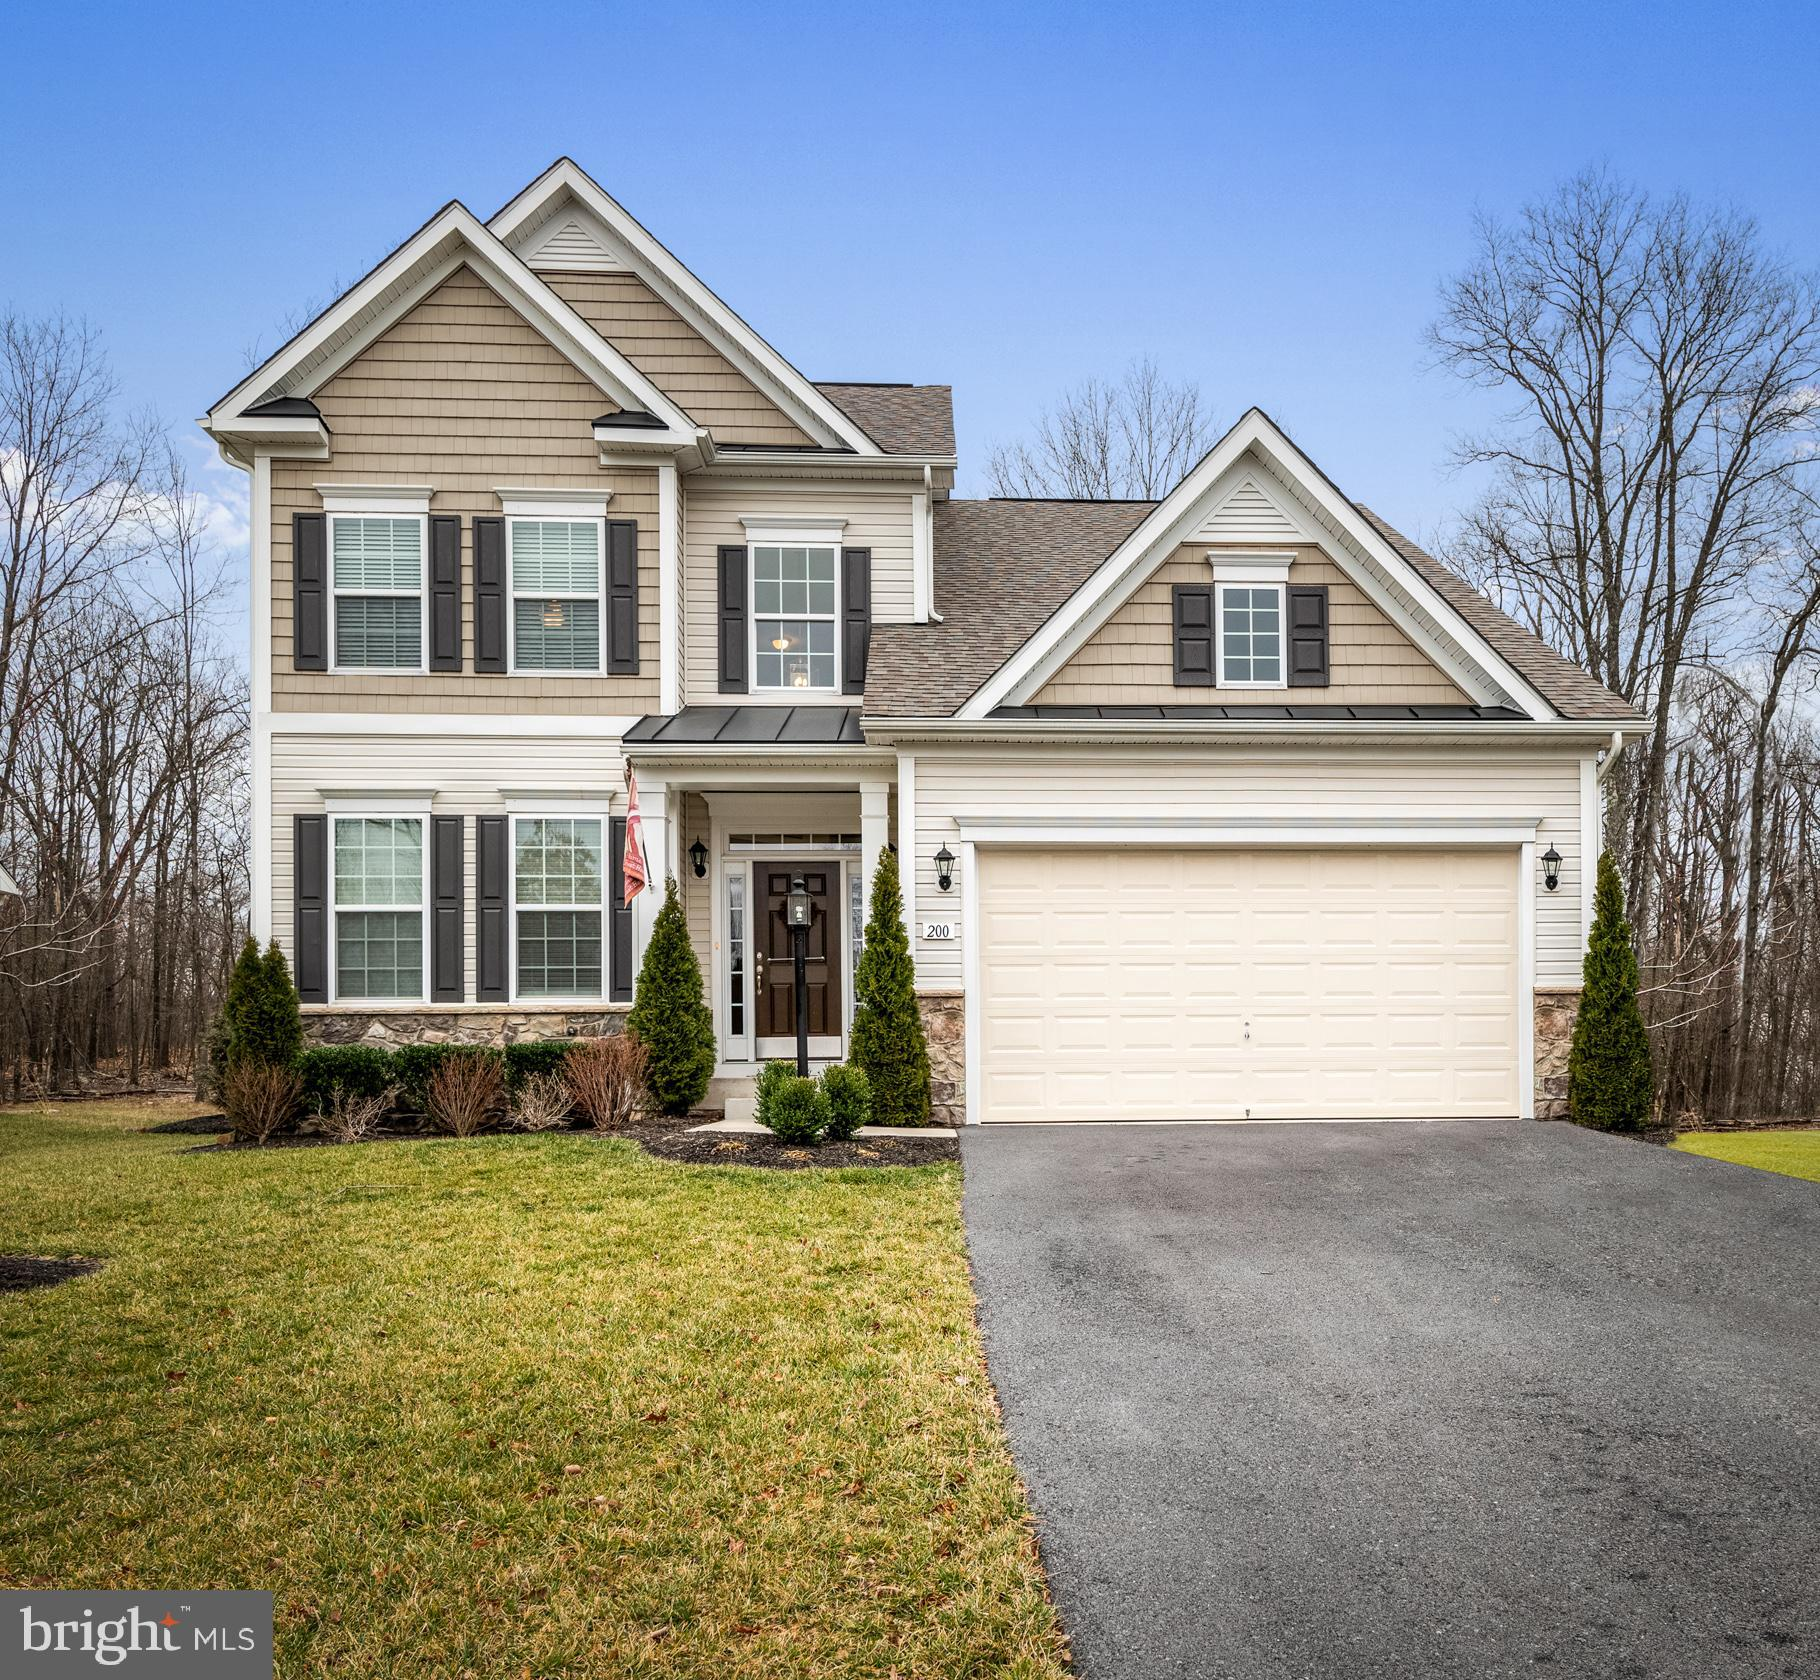 200 COUNTRY CLUB DRIVE, CROSS JUNCTION, VA 22625